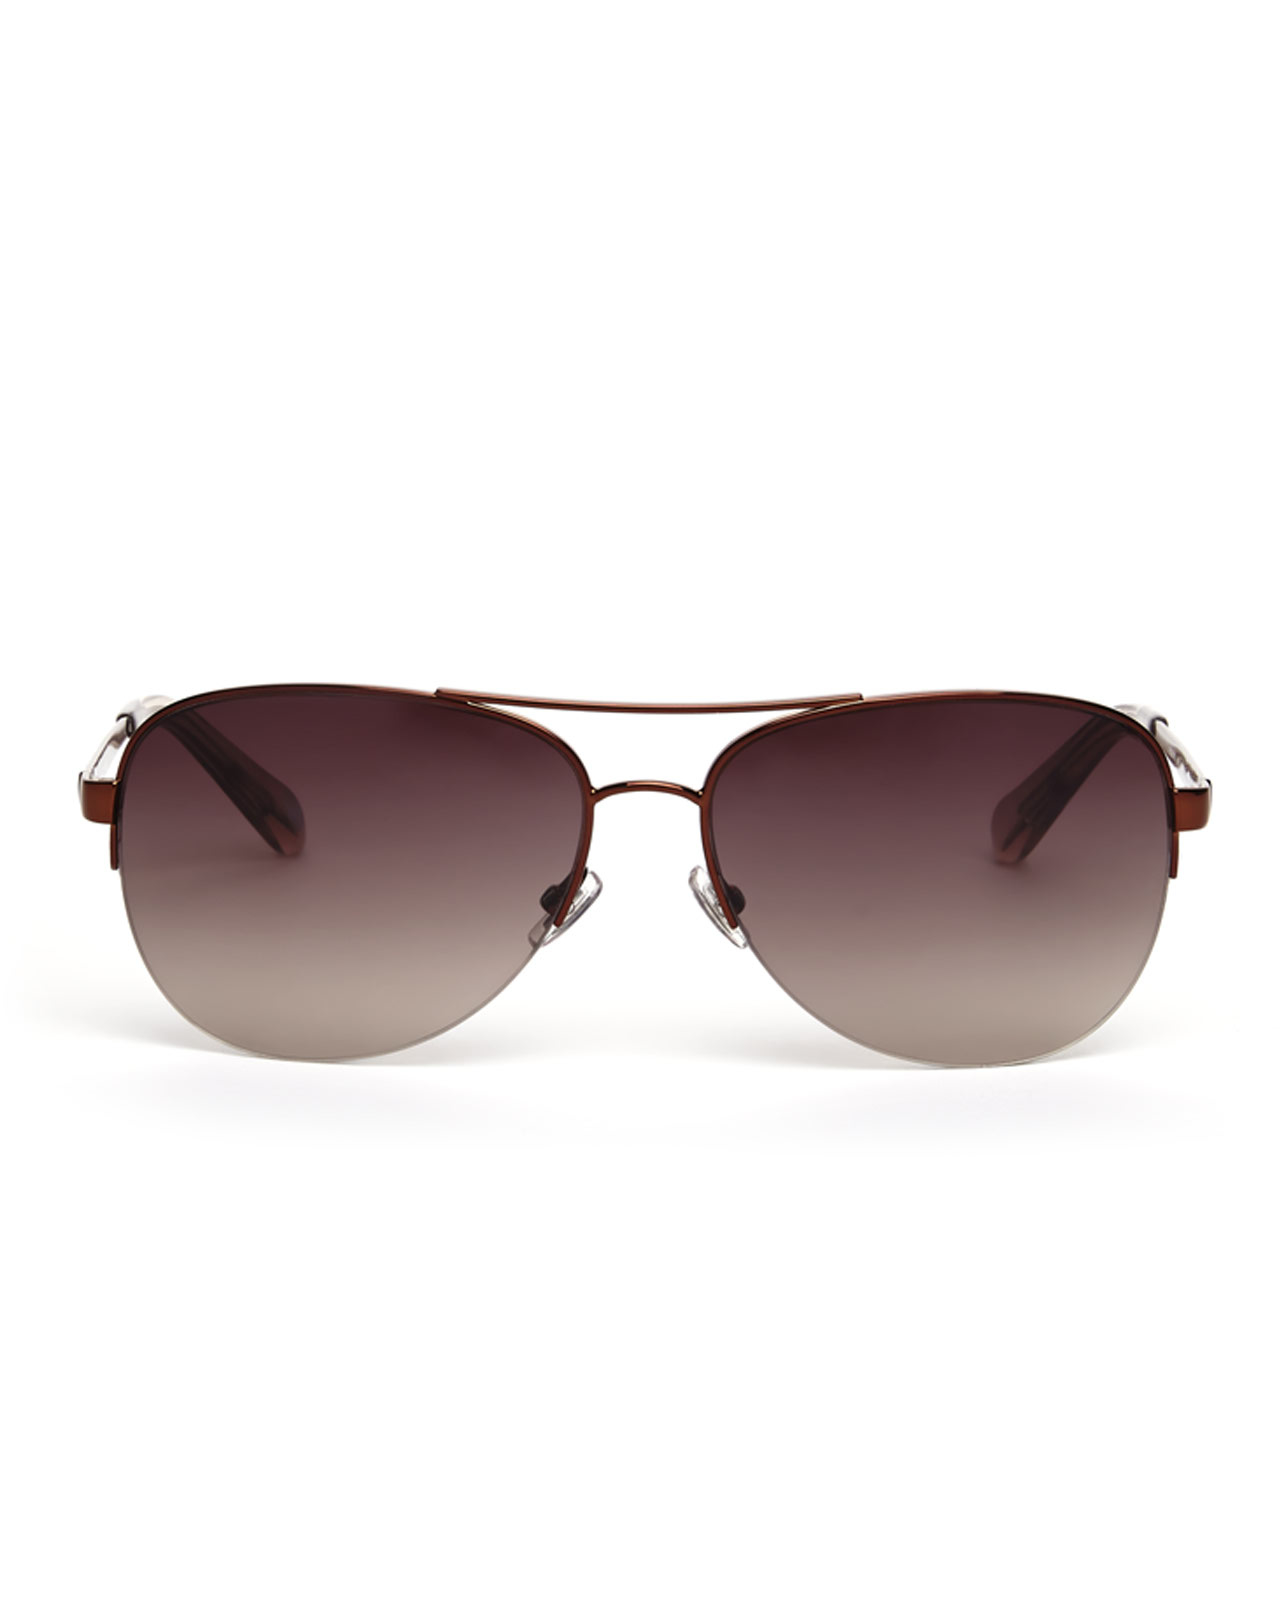 Aviator sunglasses for women -  Women Groupon Fossil Brown 3019 S Aviator Sunglasses In Brown Lyst